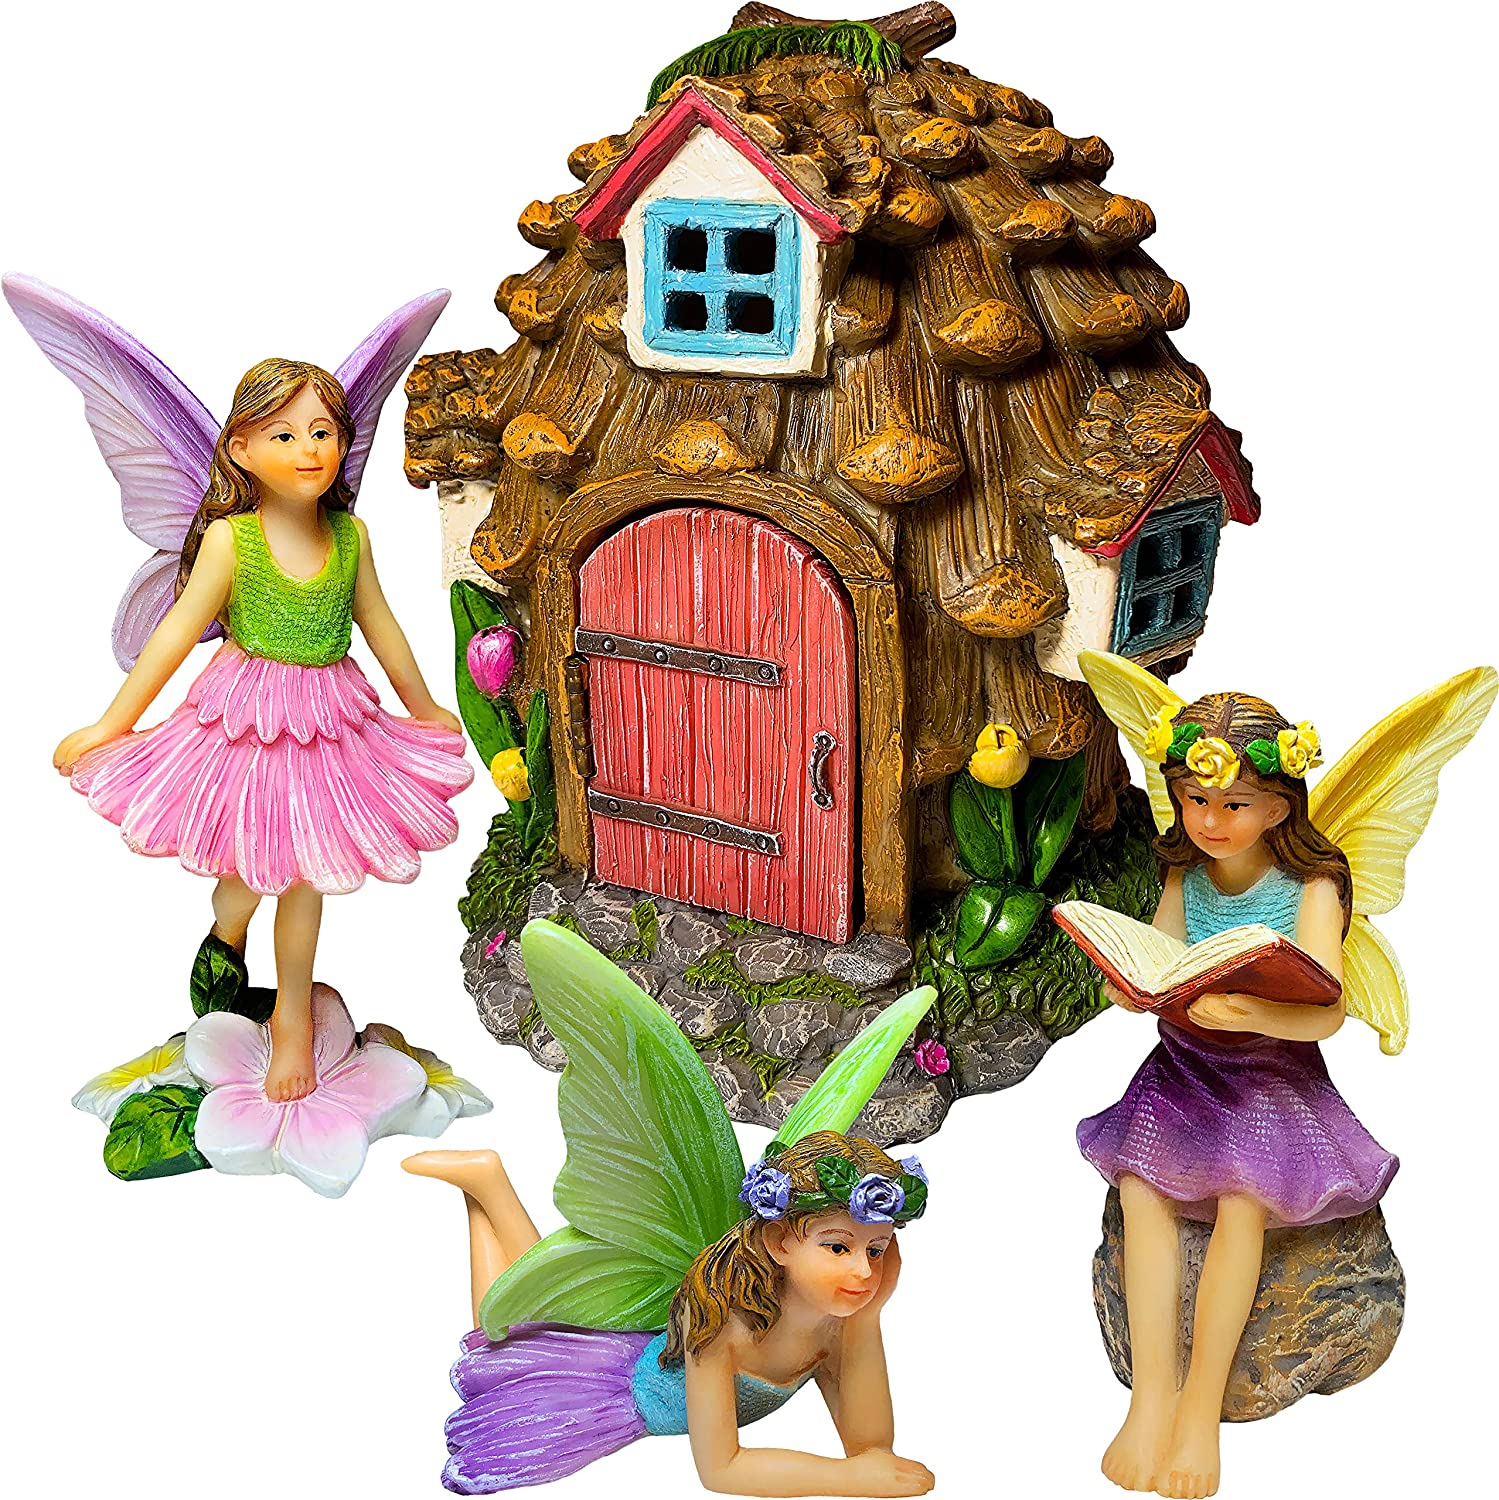 Mood Lab Fairy Garden - Pinecone Fairy House Kit - Miniature Figurines and Accessories Set of 4